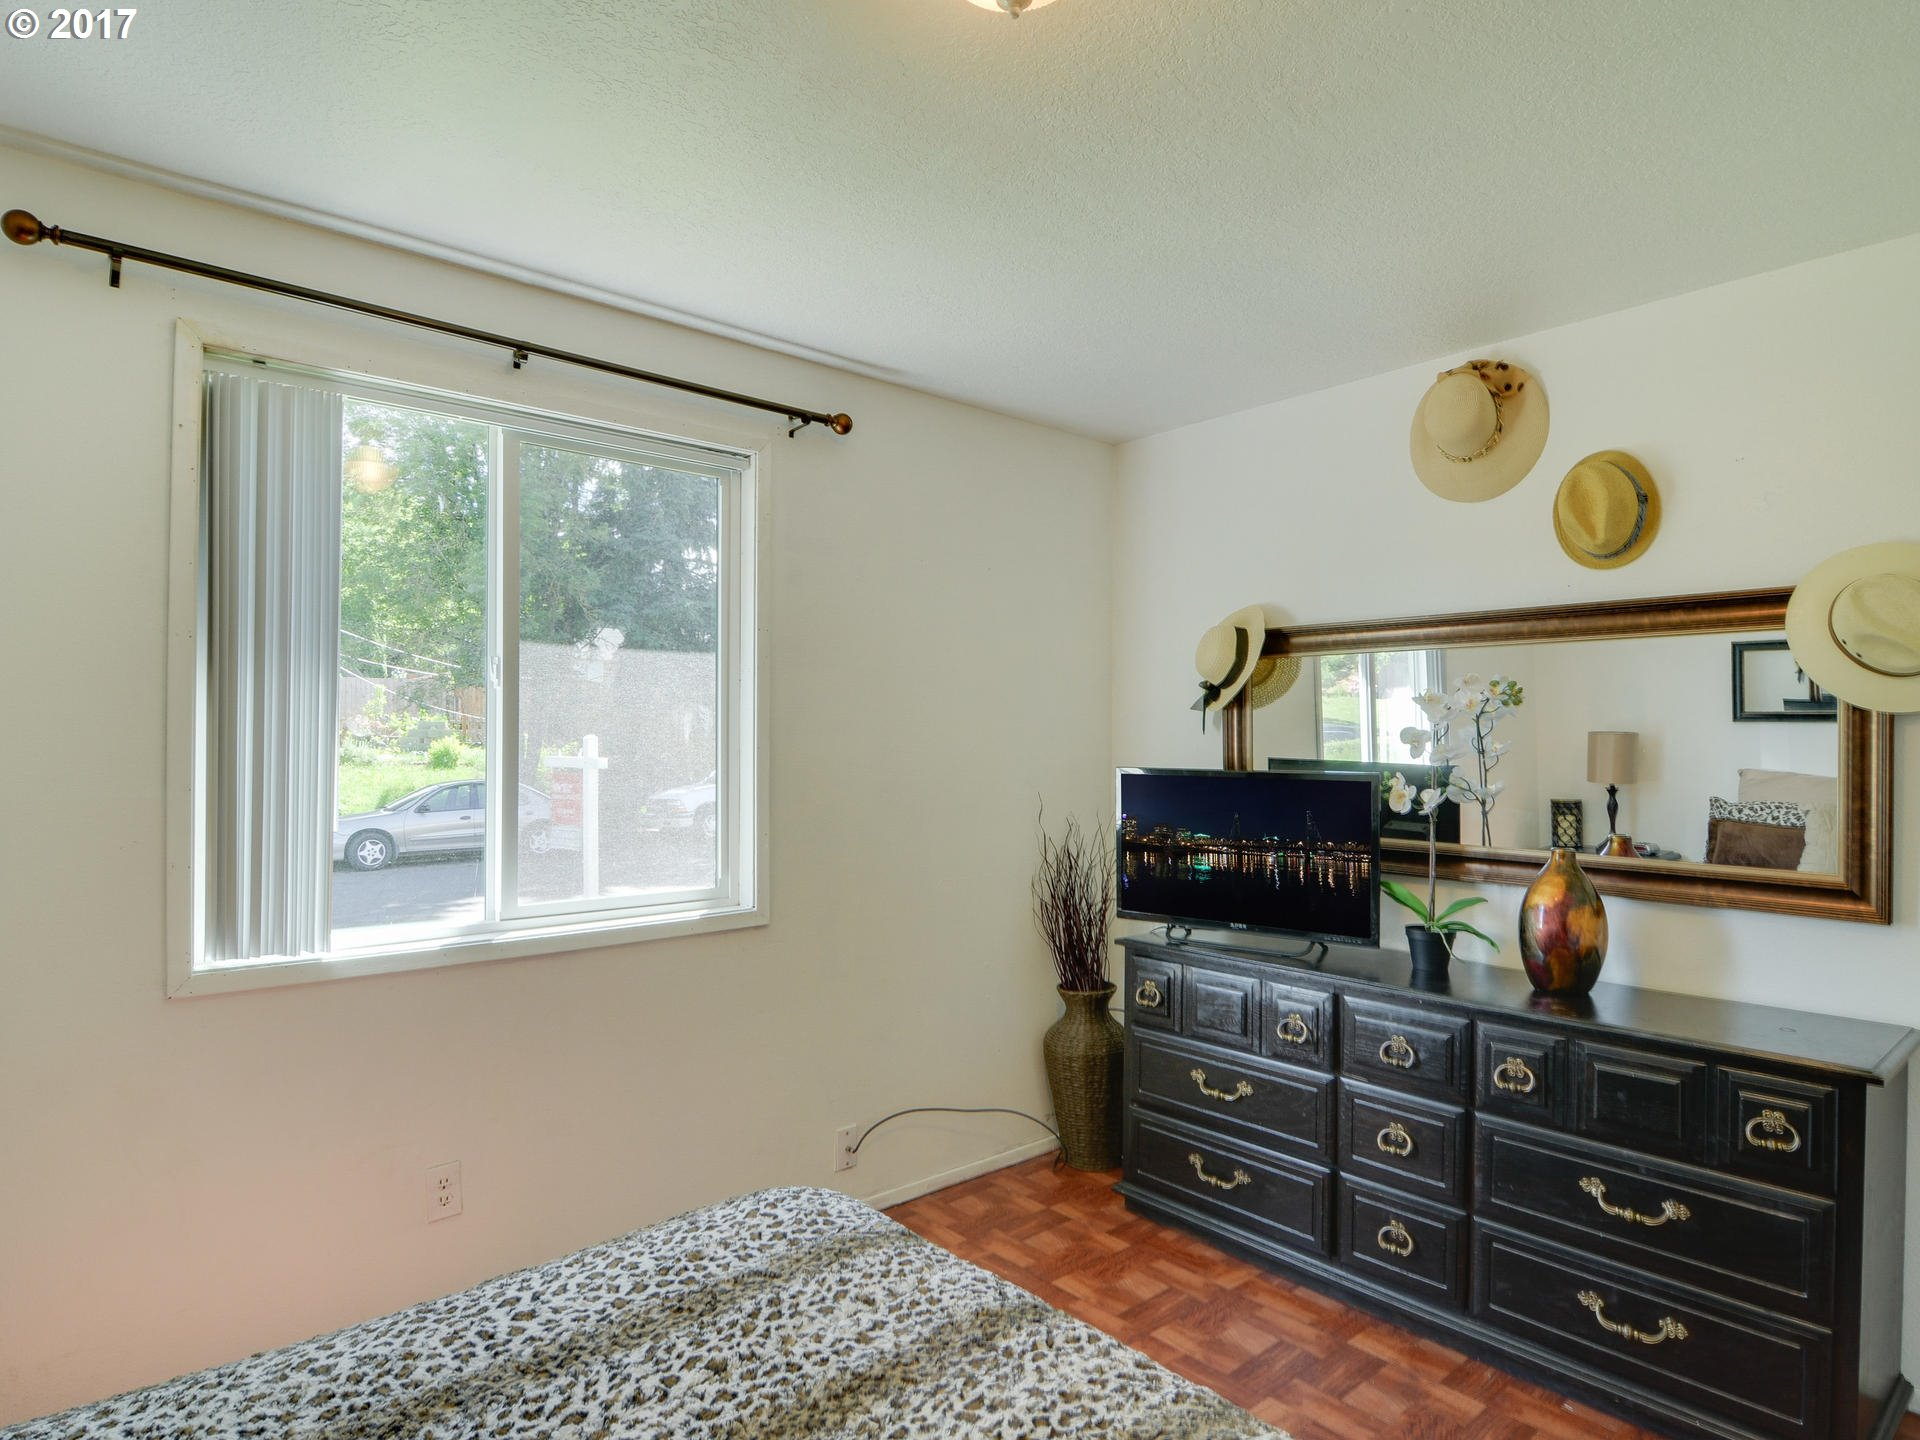 4121 N JUNEAU ST Portland, OR 97203 - MLS #: 17492307